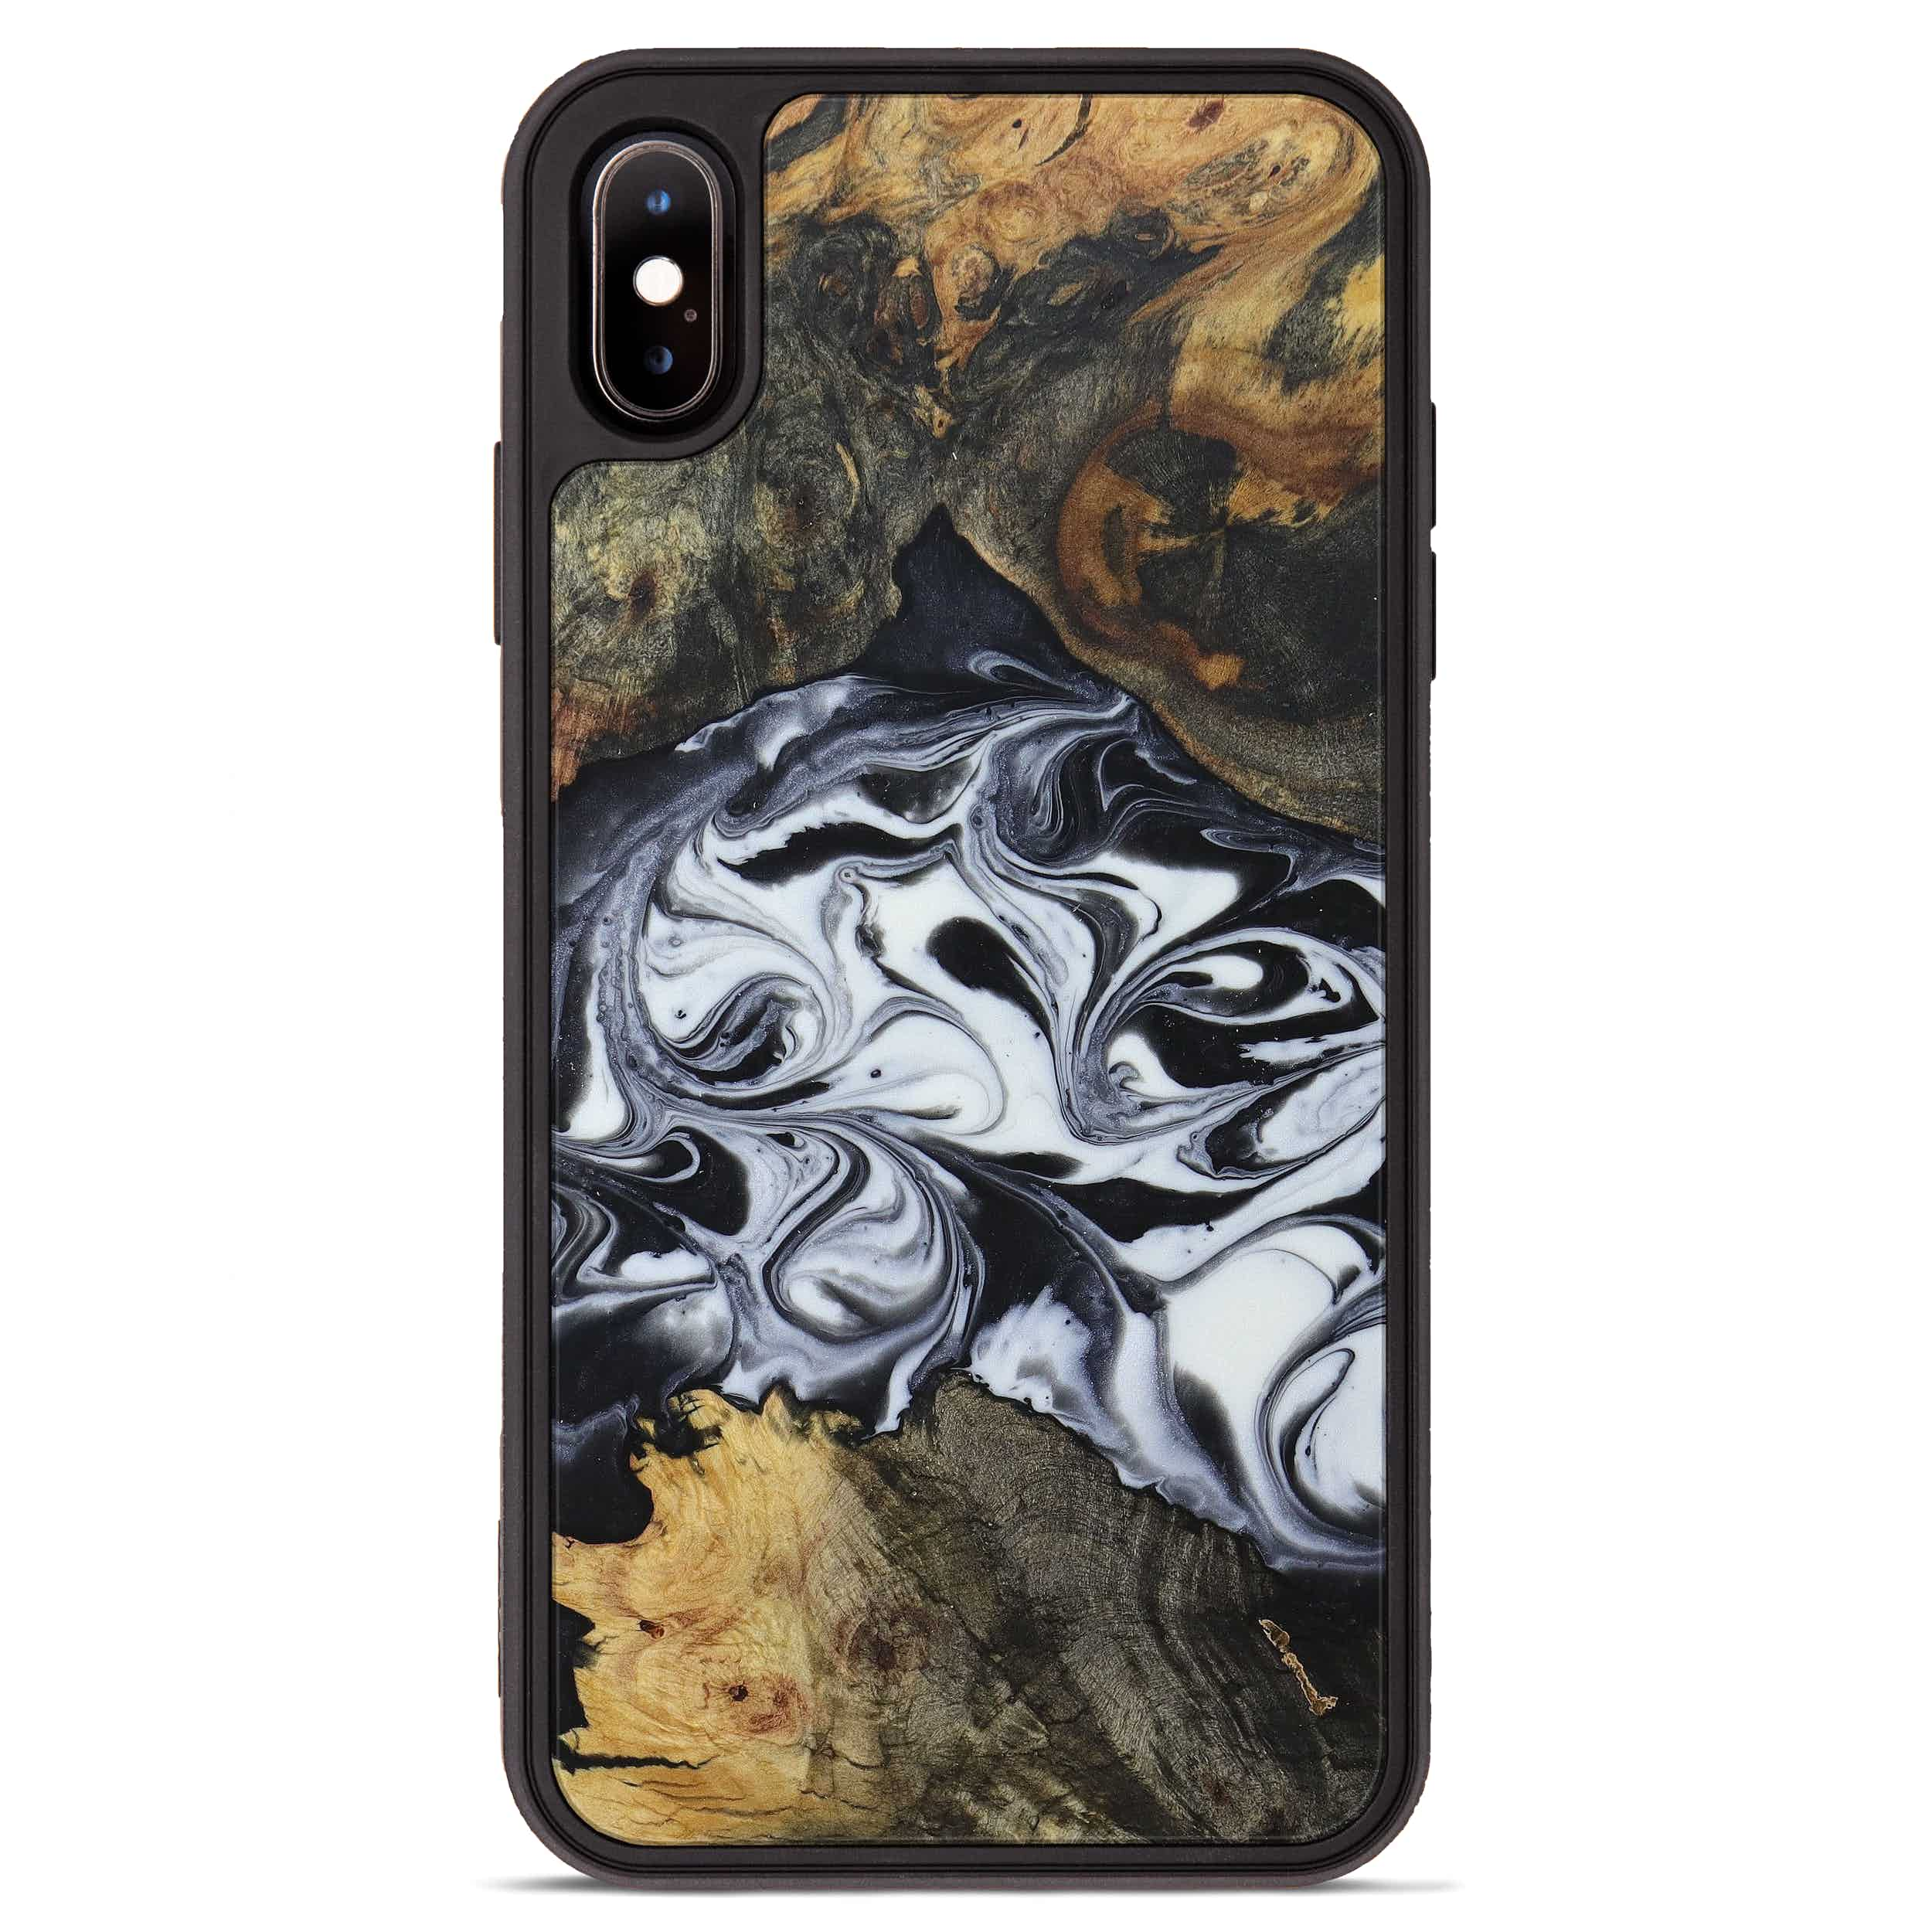 iPhone Xs Max Wood+Resin Phone Case - Weiping (Black & White, 397378)